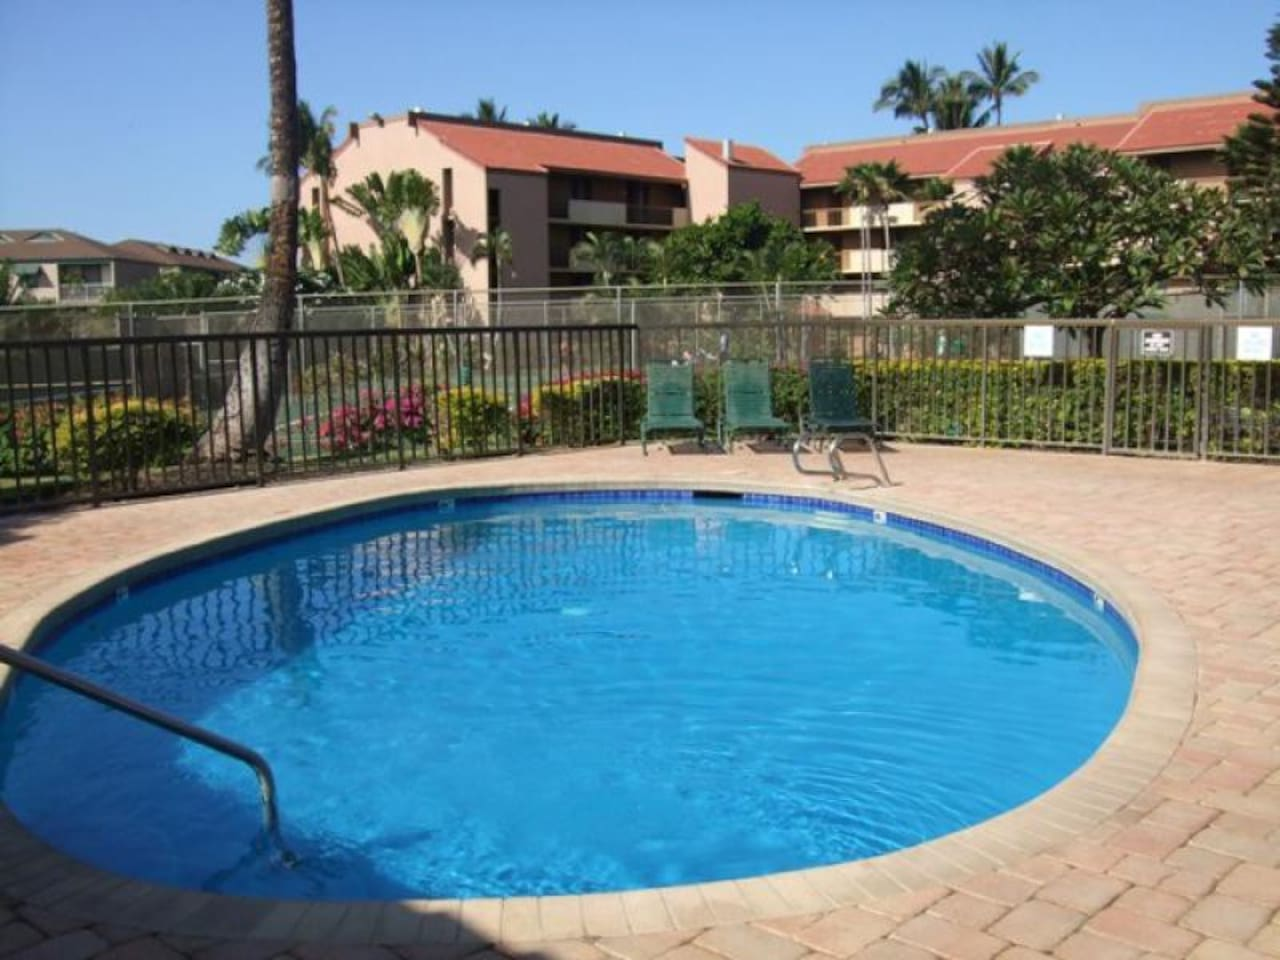 1 of 3 On-Site Pool Areas